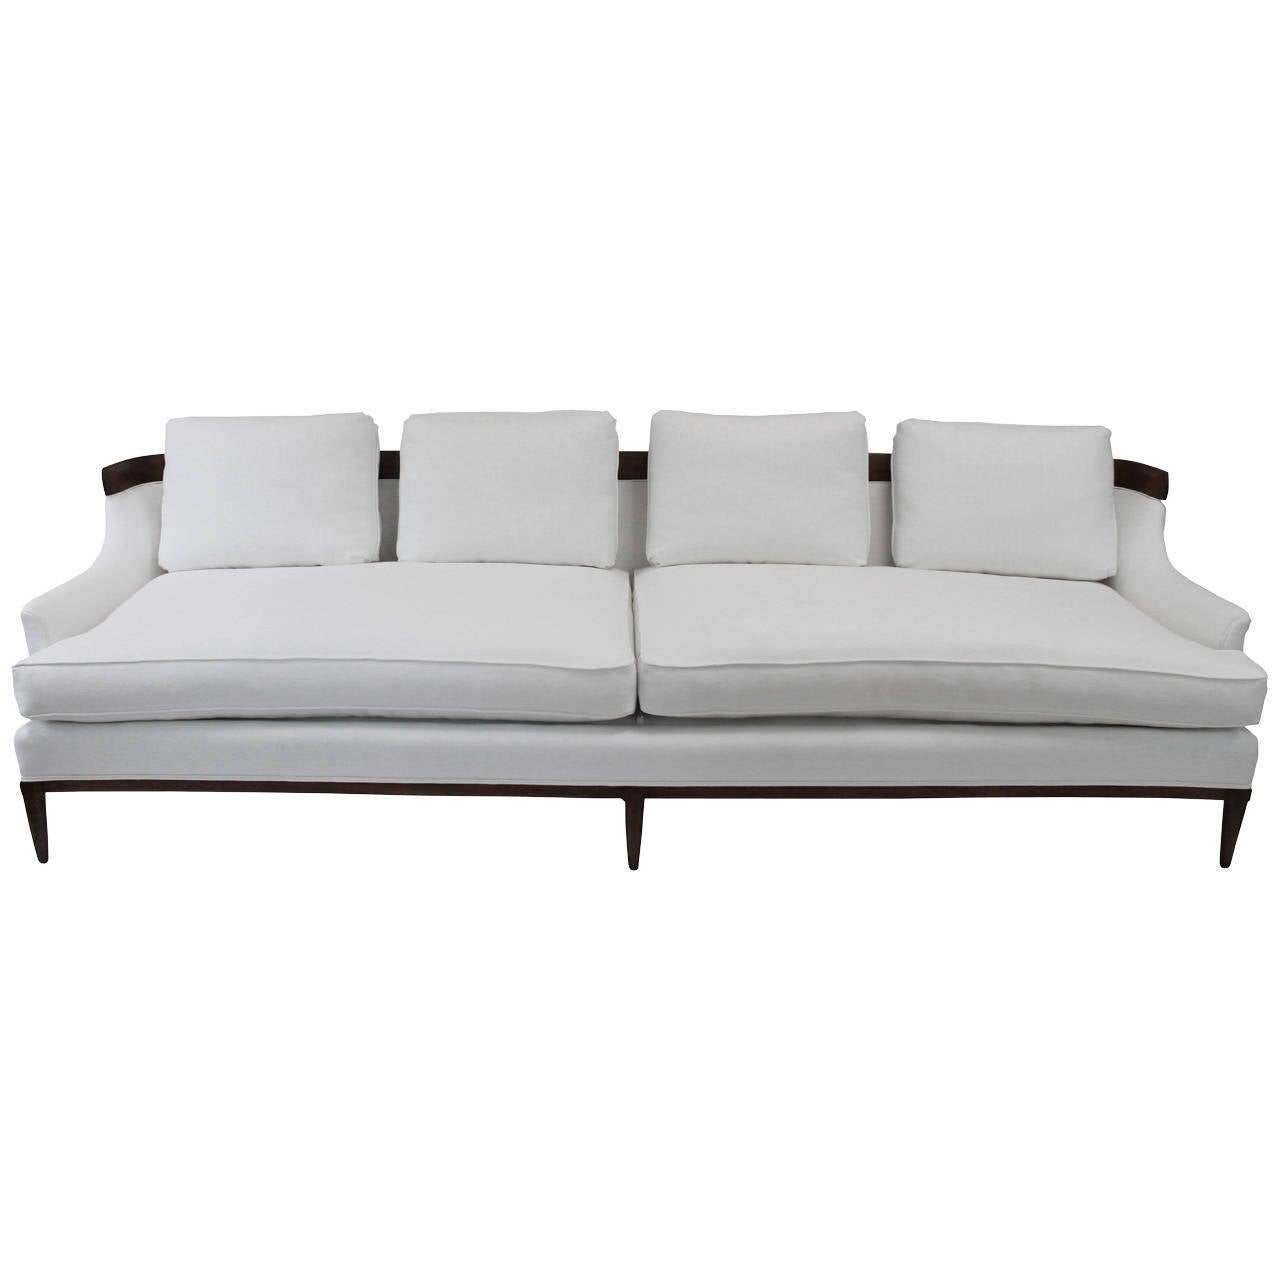 Erwin lambeth white linen sofa at 1stdibs for White linen sectional sofa